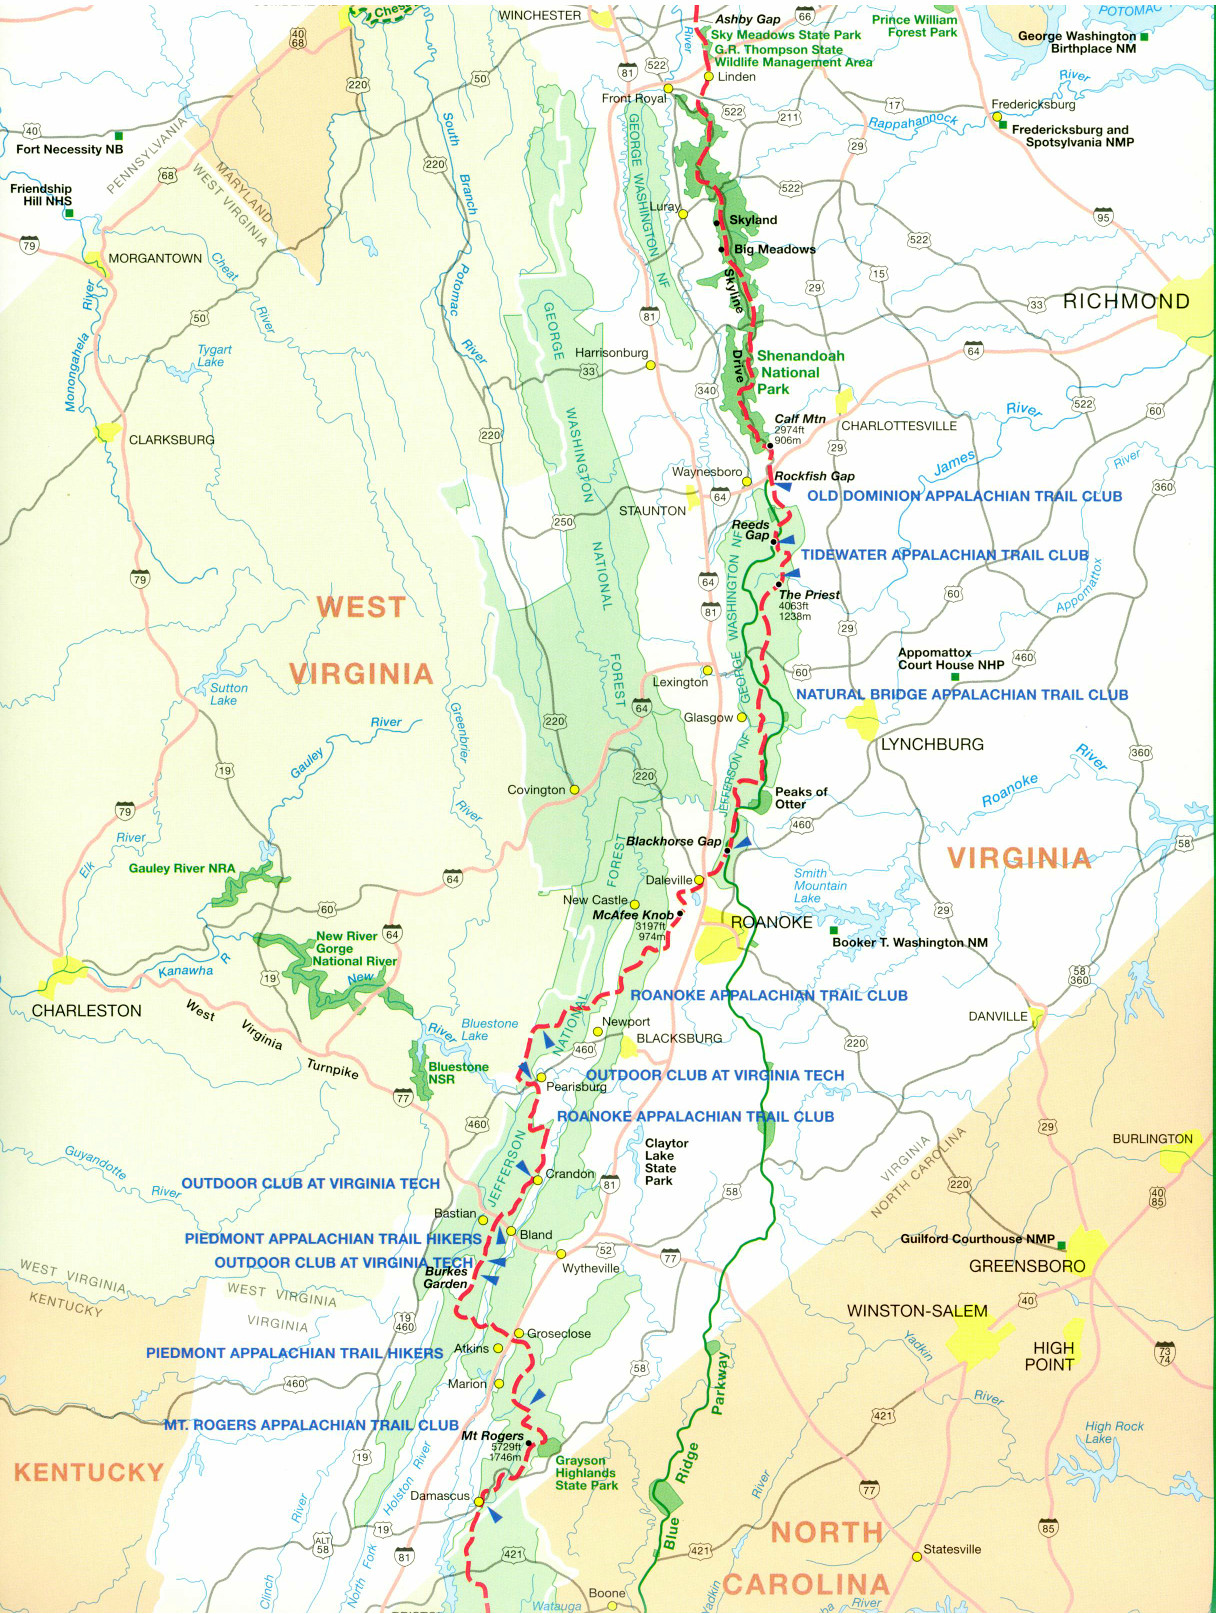 Official Appalachian Trail Maps on